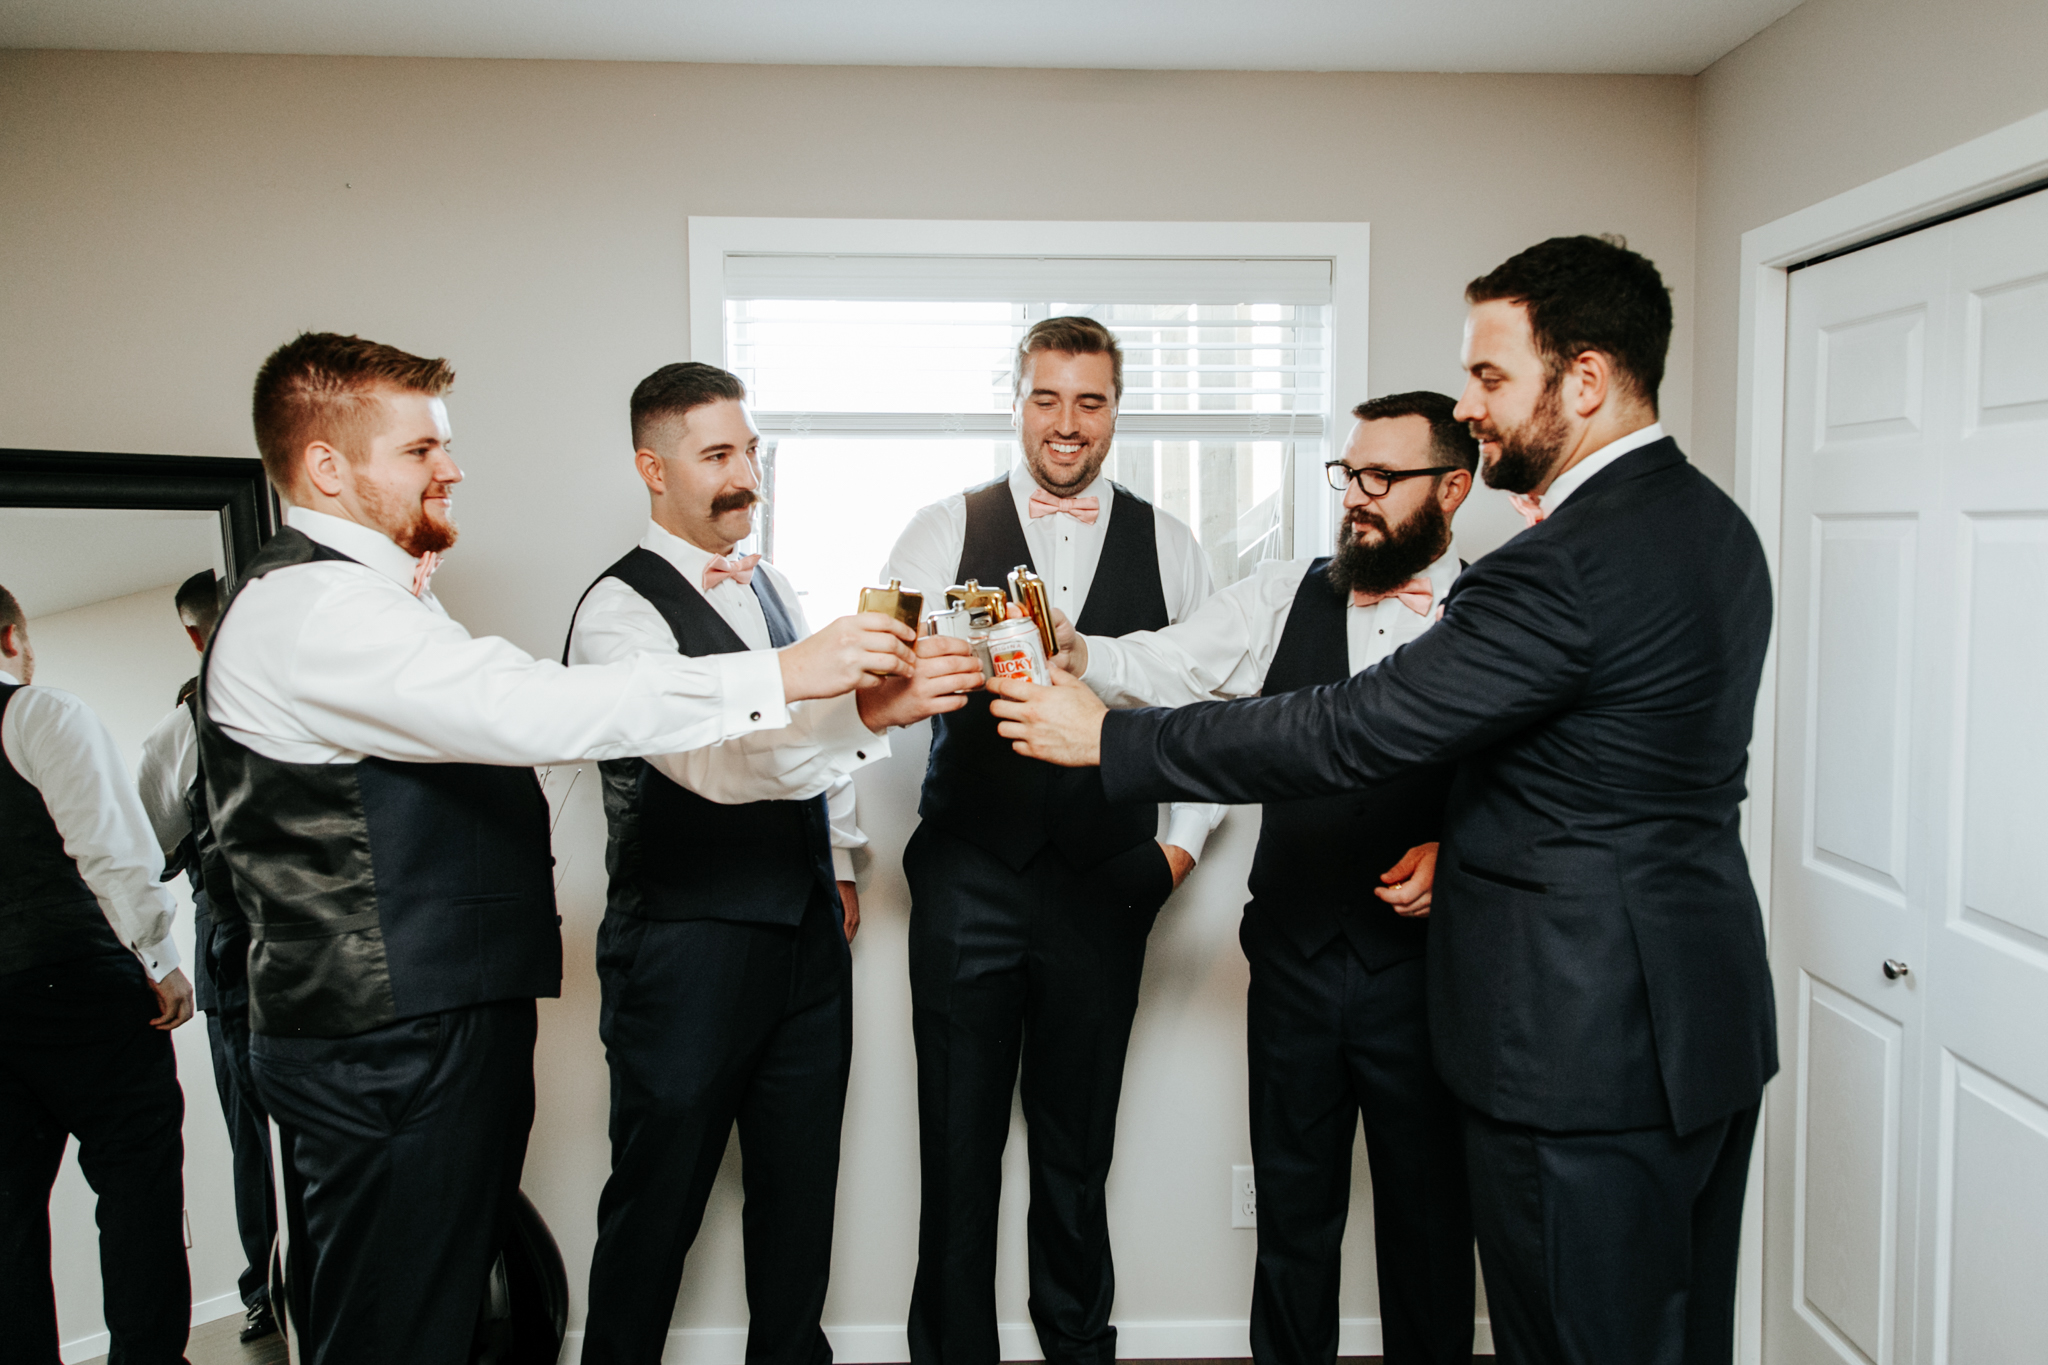 red-deer-wedding-photographer-love-and-be-loved-photography-emily-gab-photo-image-picture-46.jpg